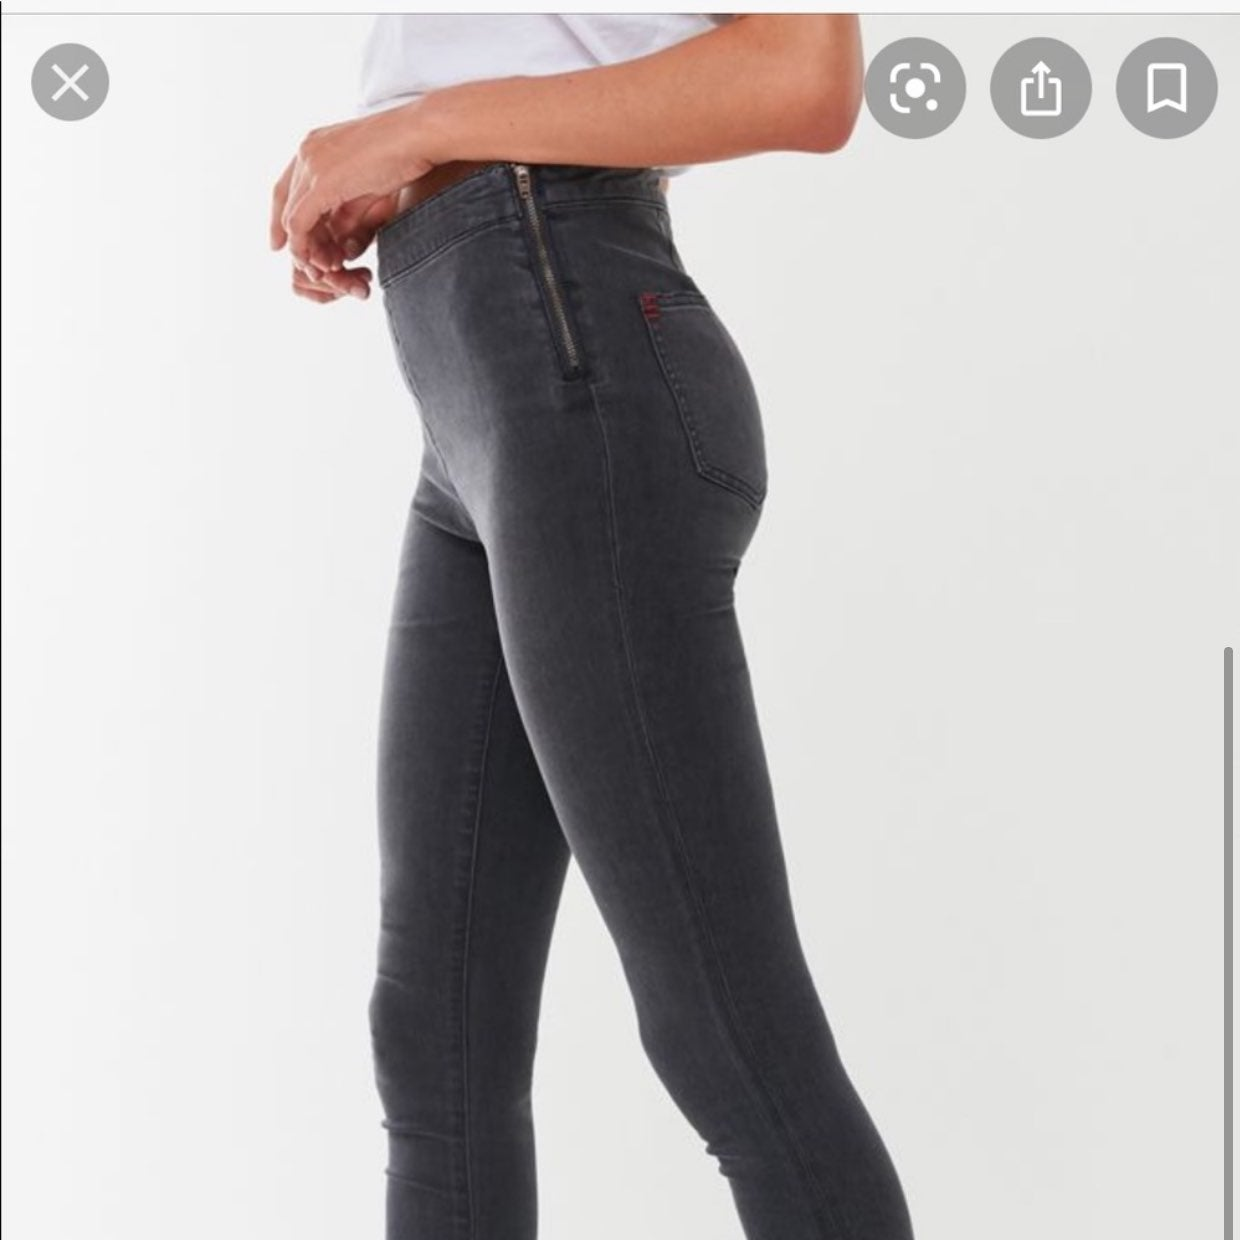 Charcoal black high rise jeans